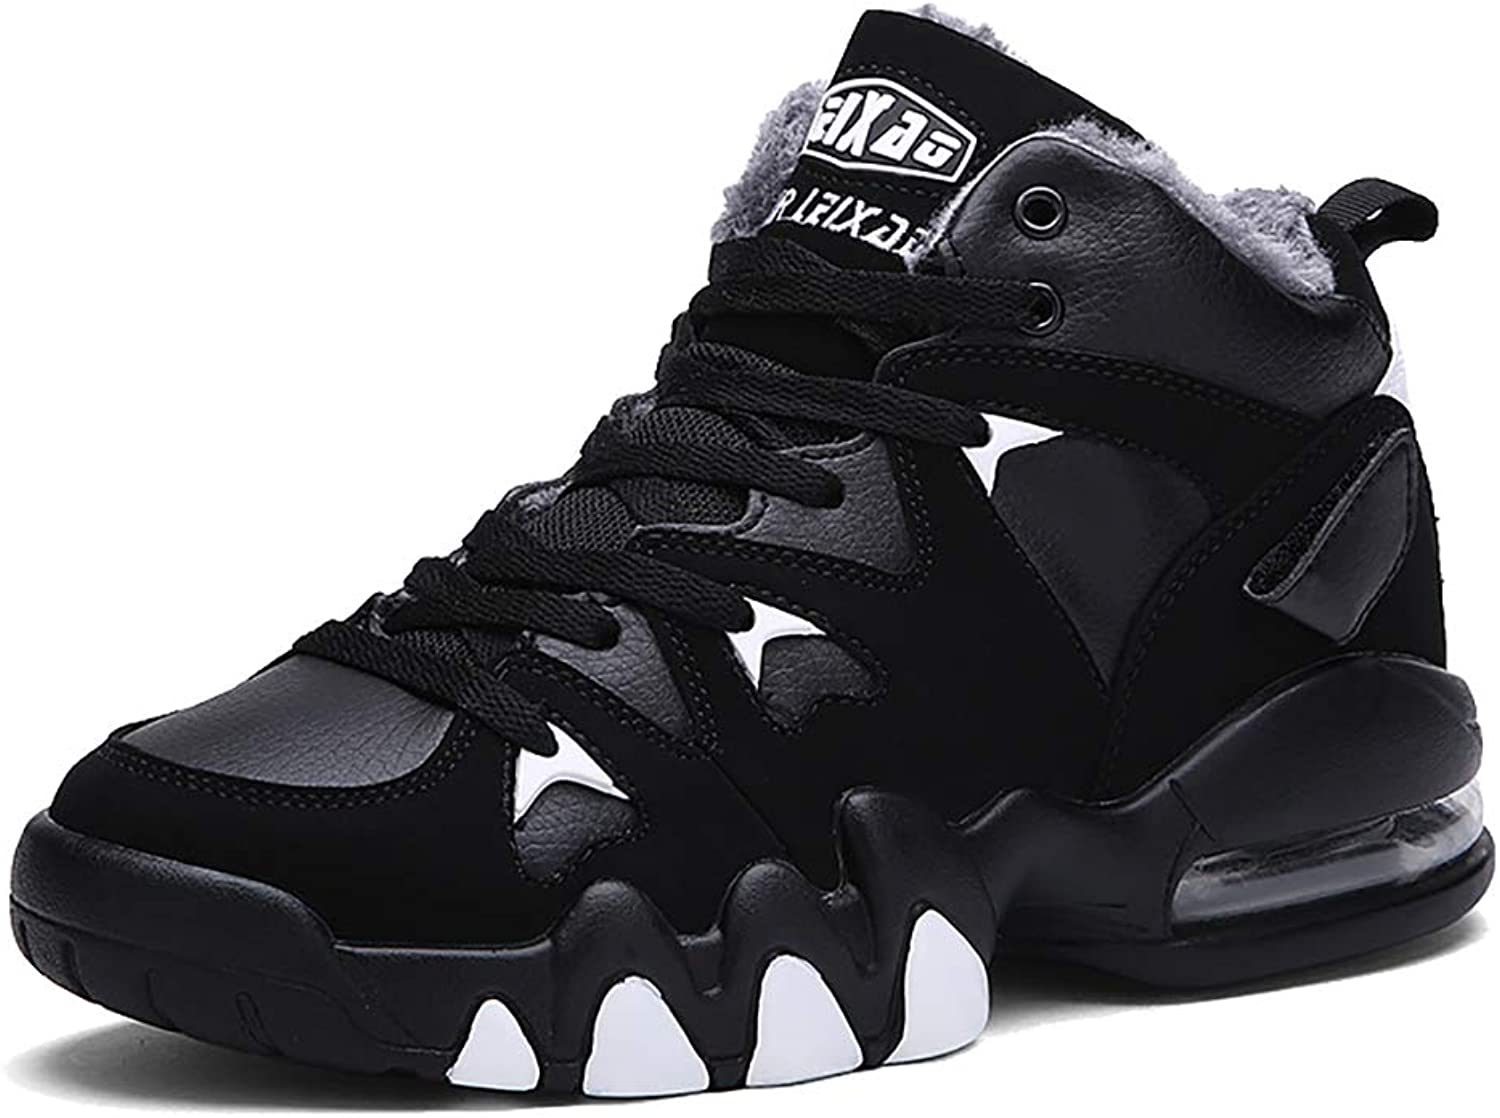 YVWTUC Male Strong Flexible PU Sole Basketball shoes Cozy Outdoor Sneakers